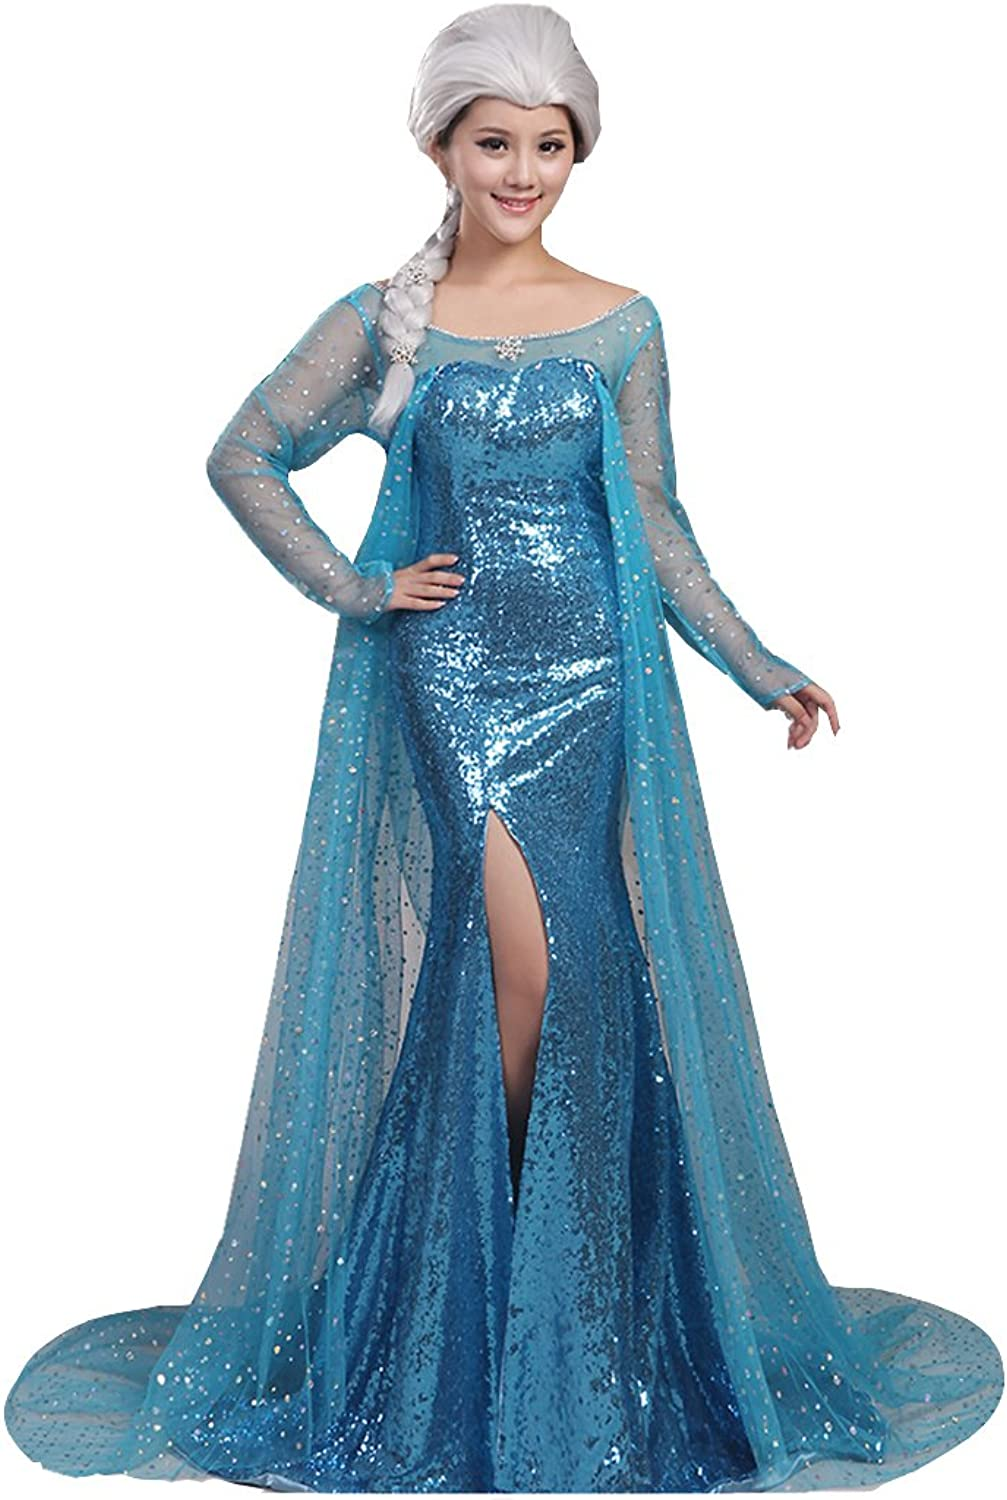 Engerla Women's Anime Snow Queen Cosplay Party Beaded Sequines Party Dress